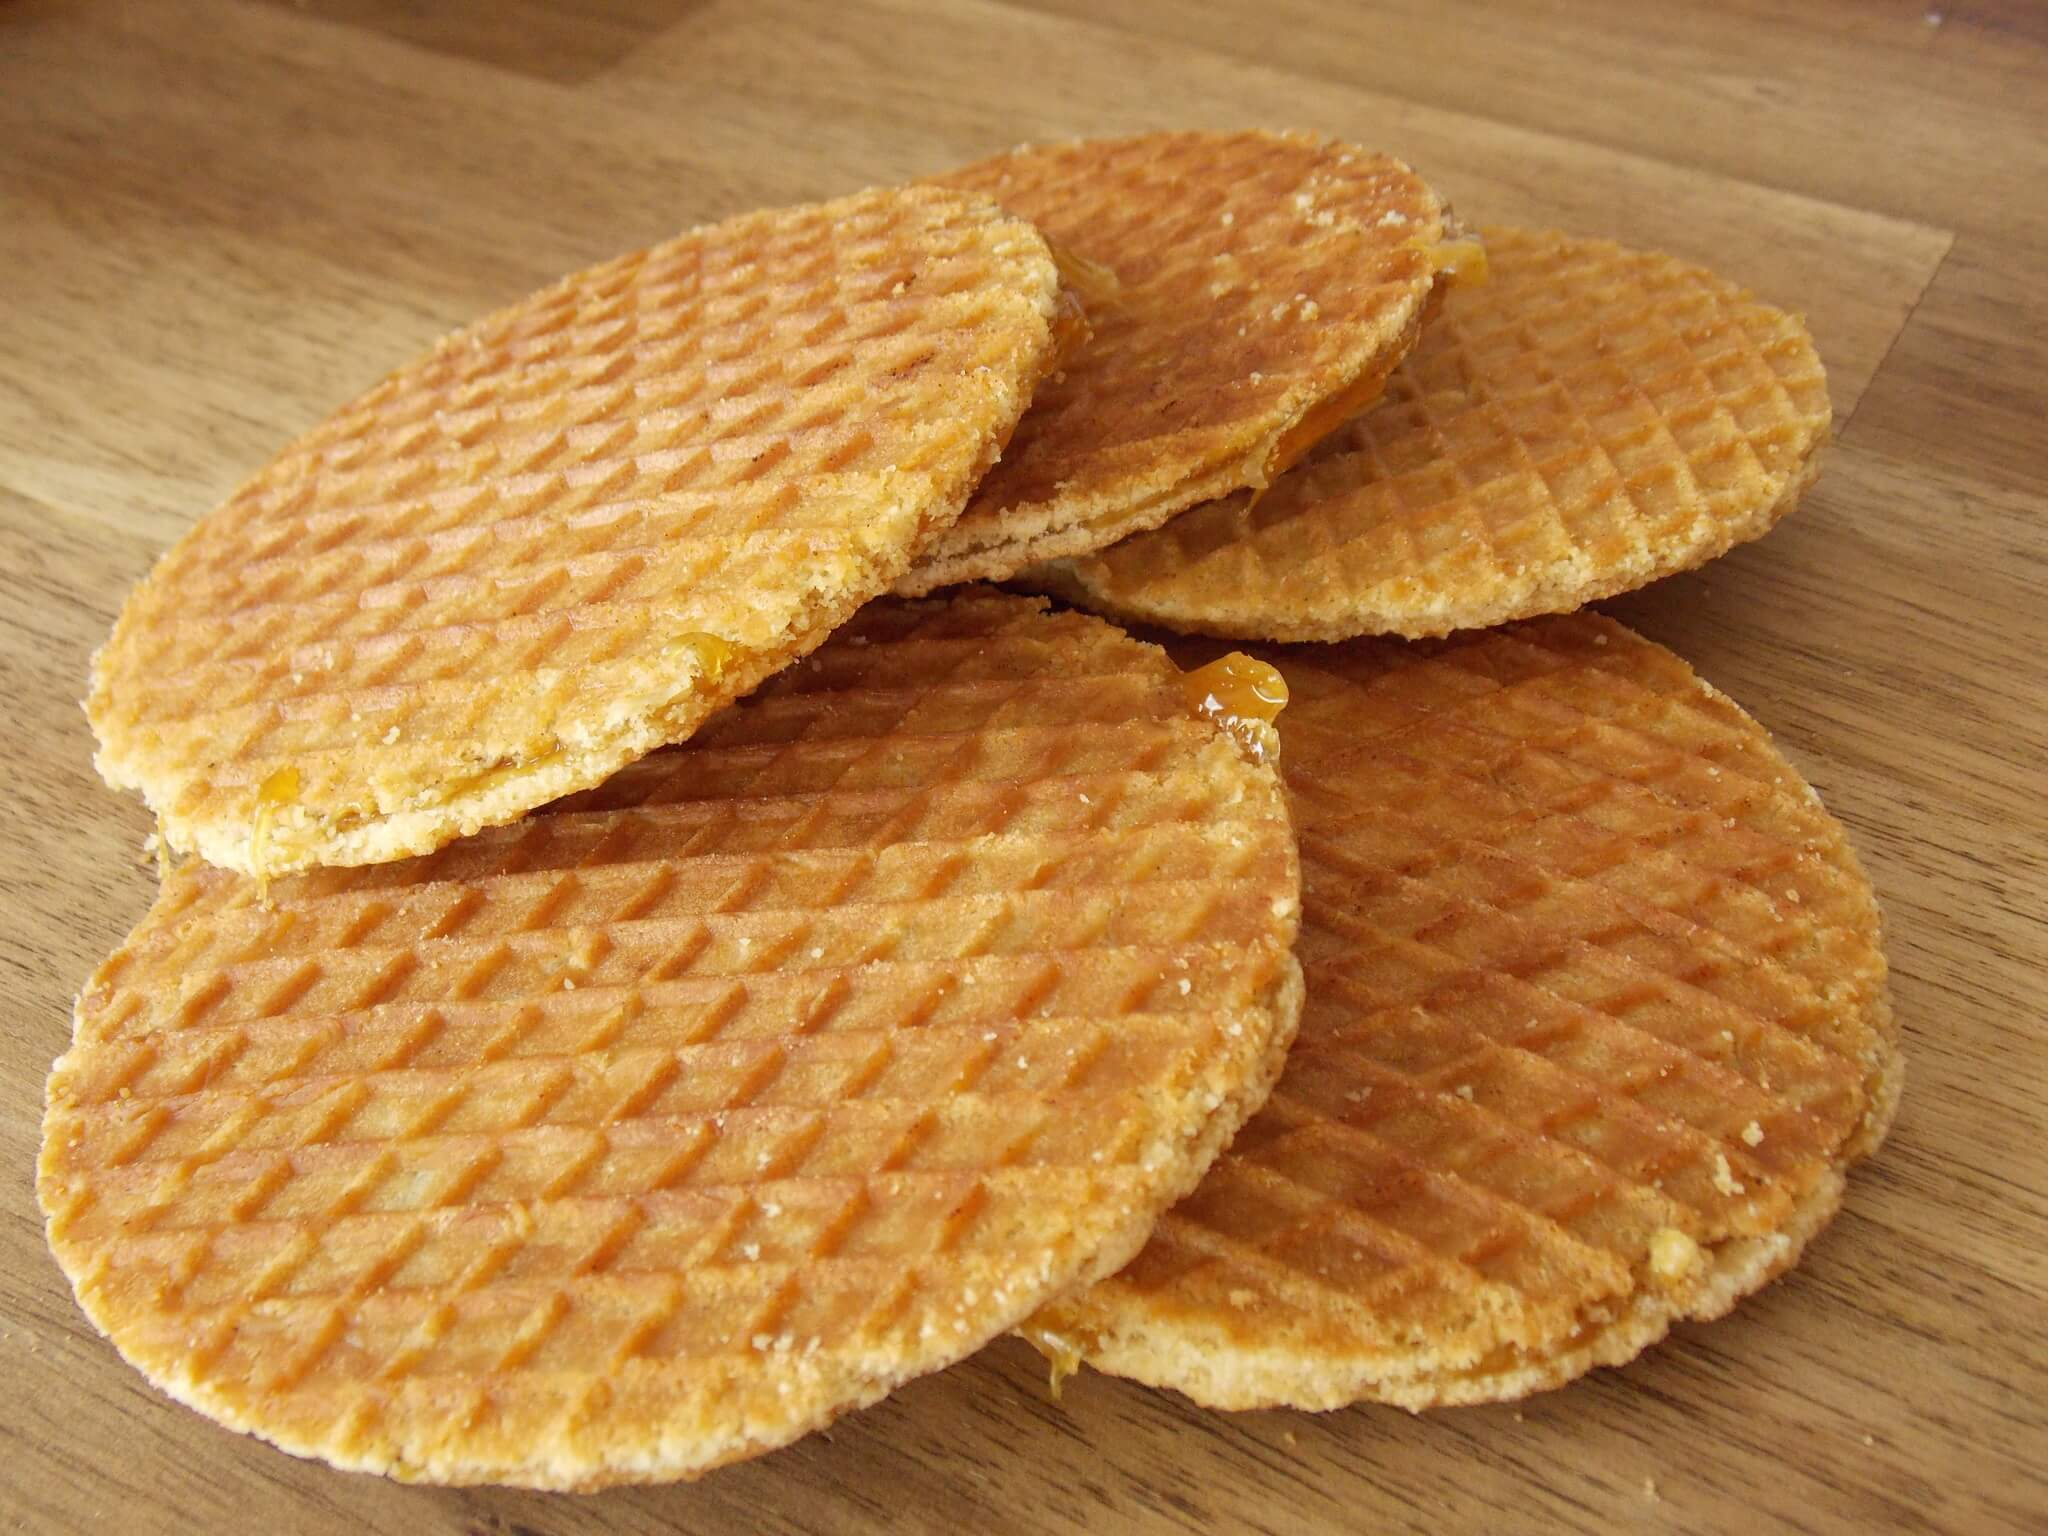 Stroopwafels 8pack Dutch Syrup Waffles Big Bite Dutch Treats